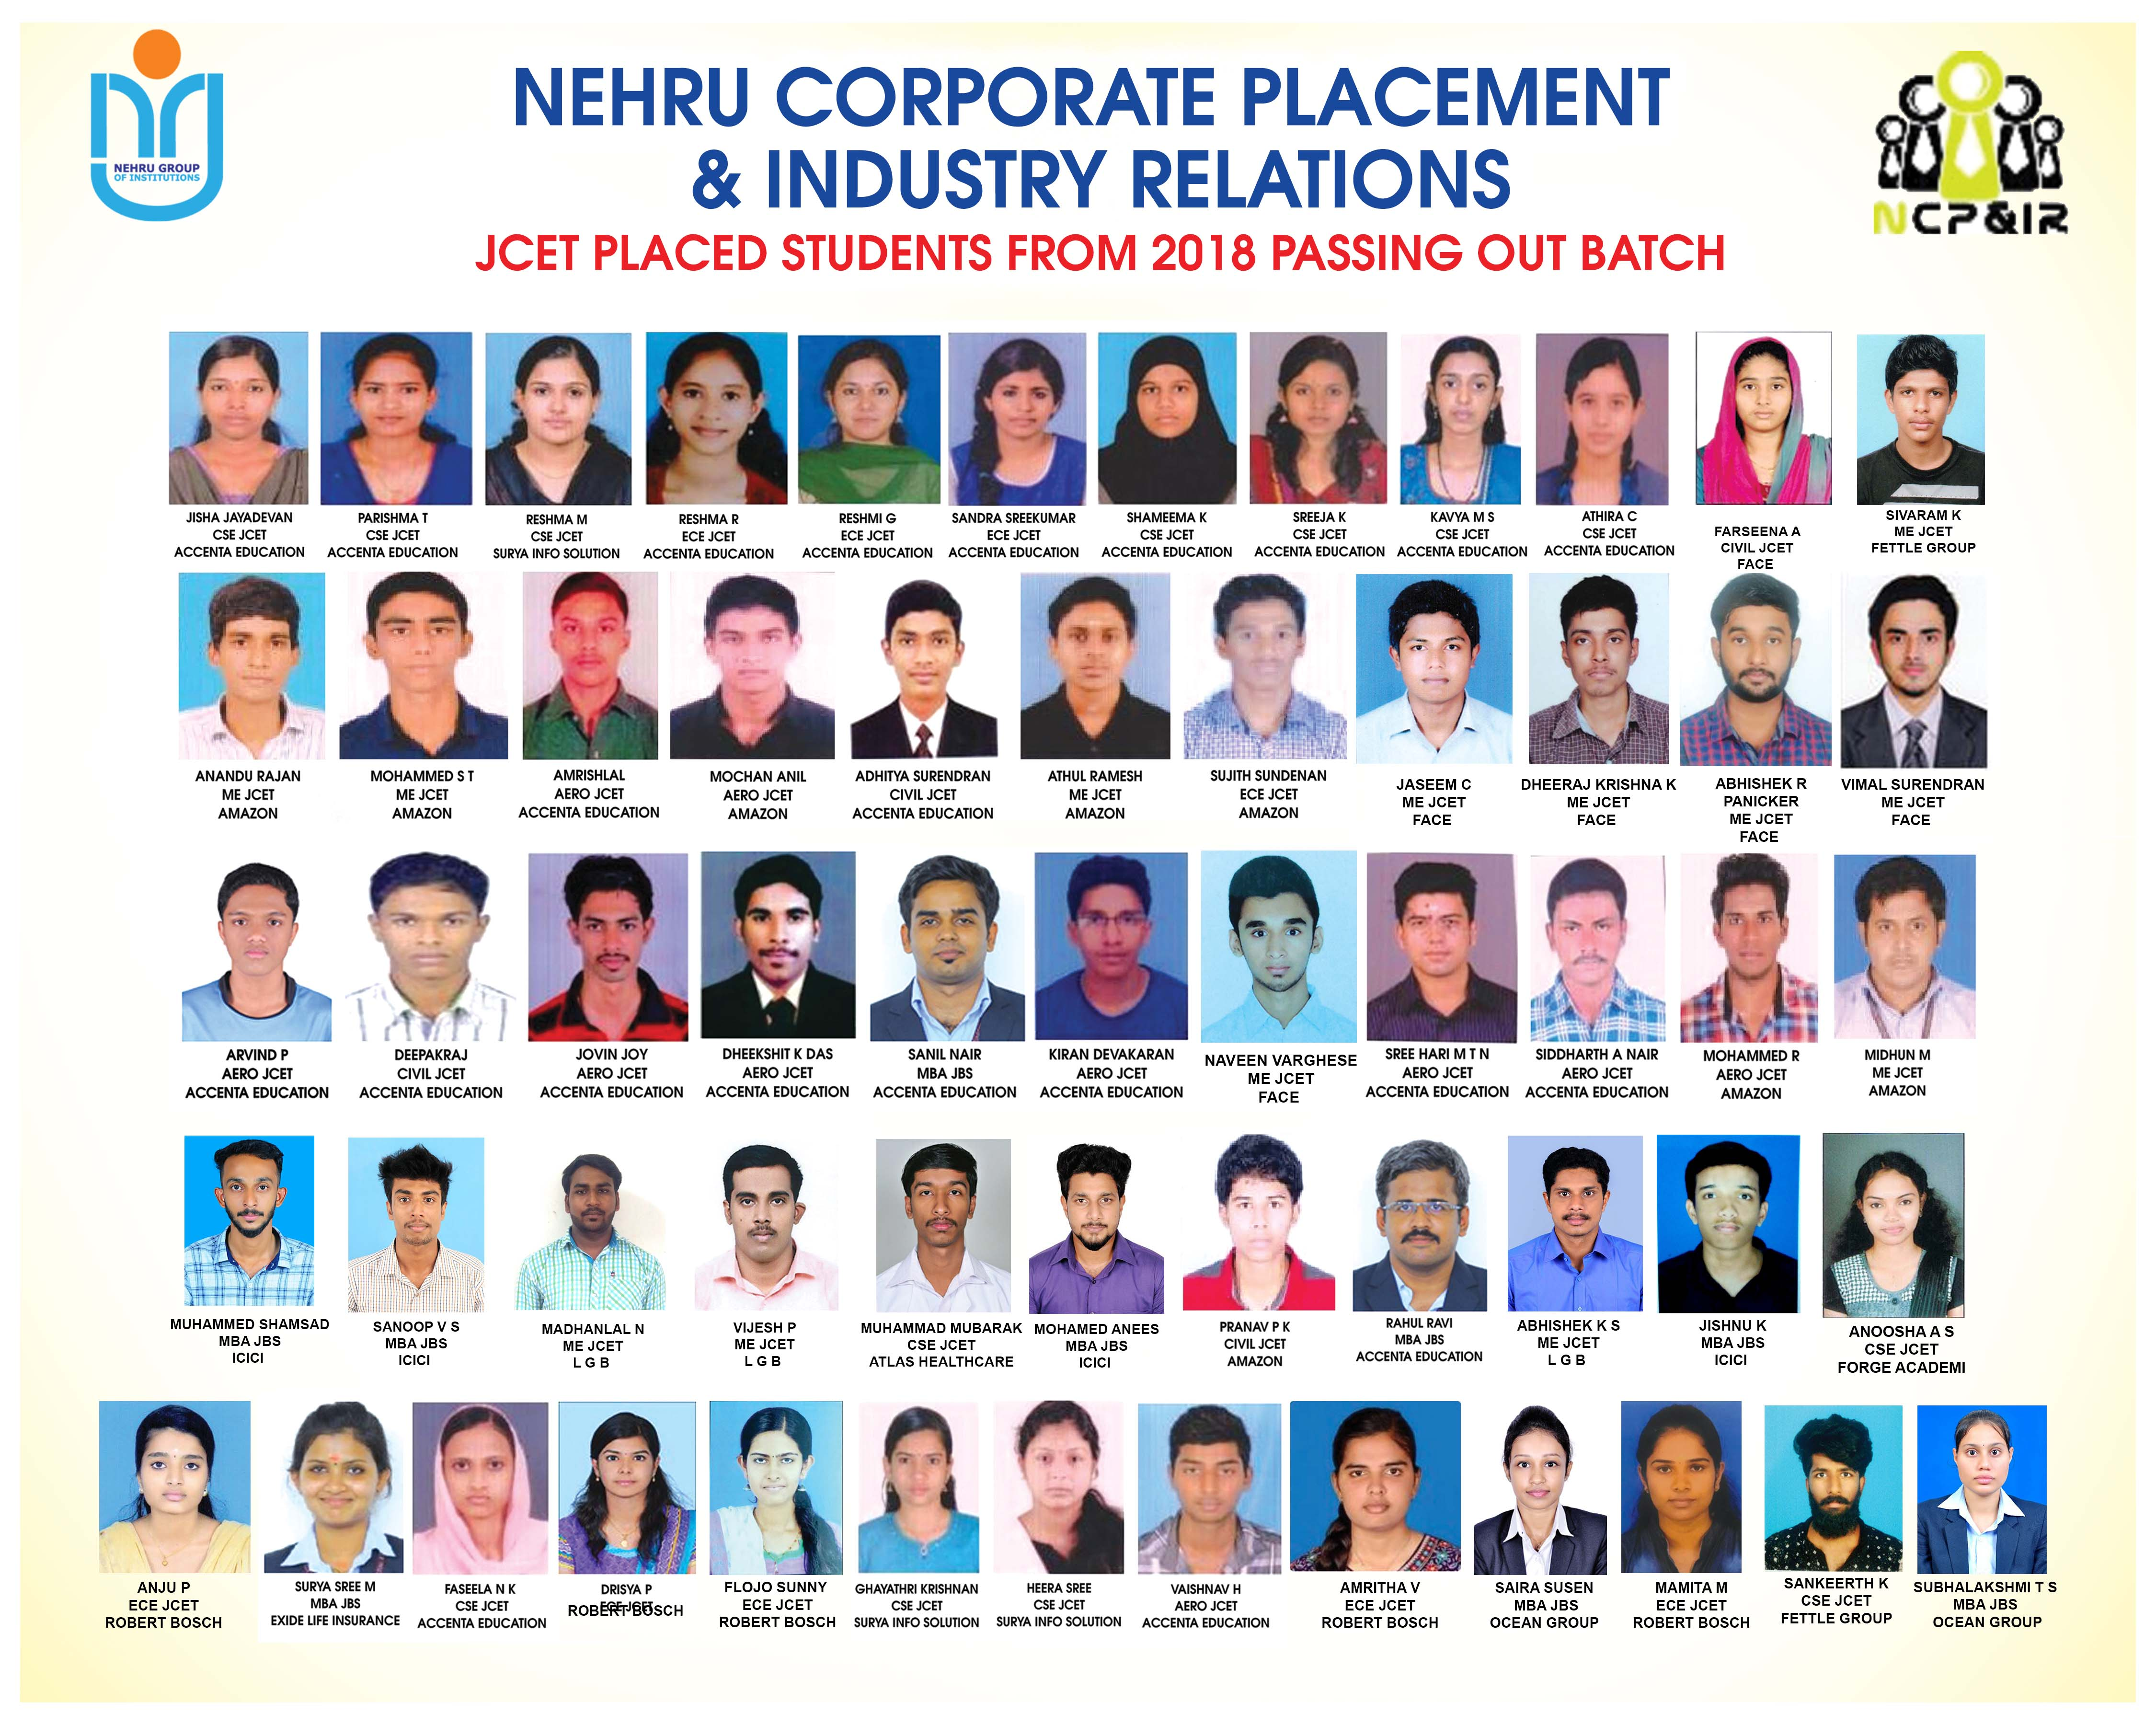 STUDENTS PLACED FROM 2018 PASSING OUT BATCH